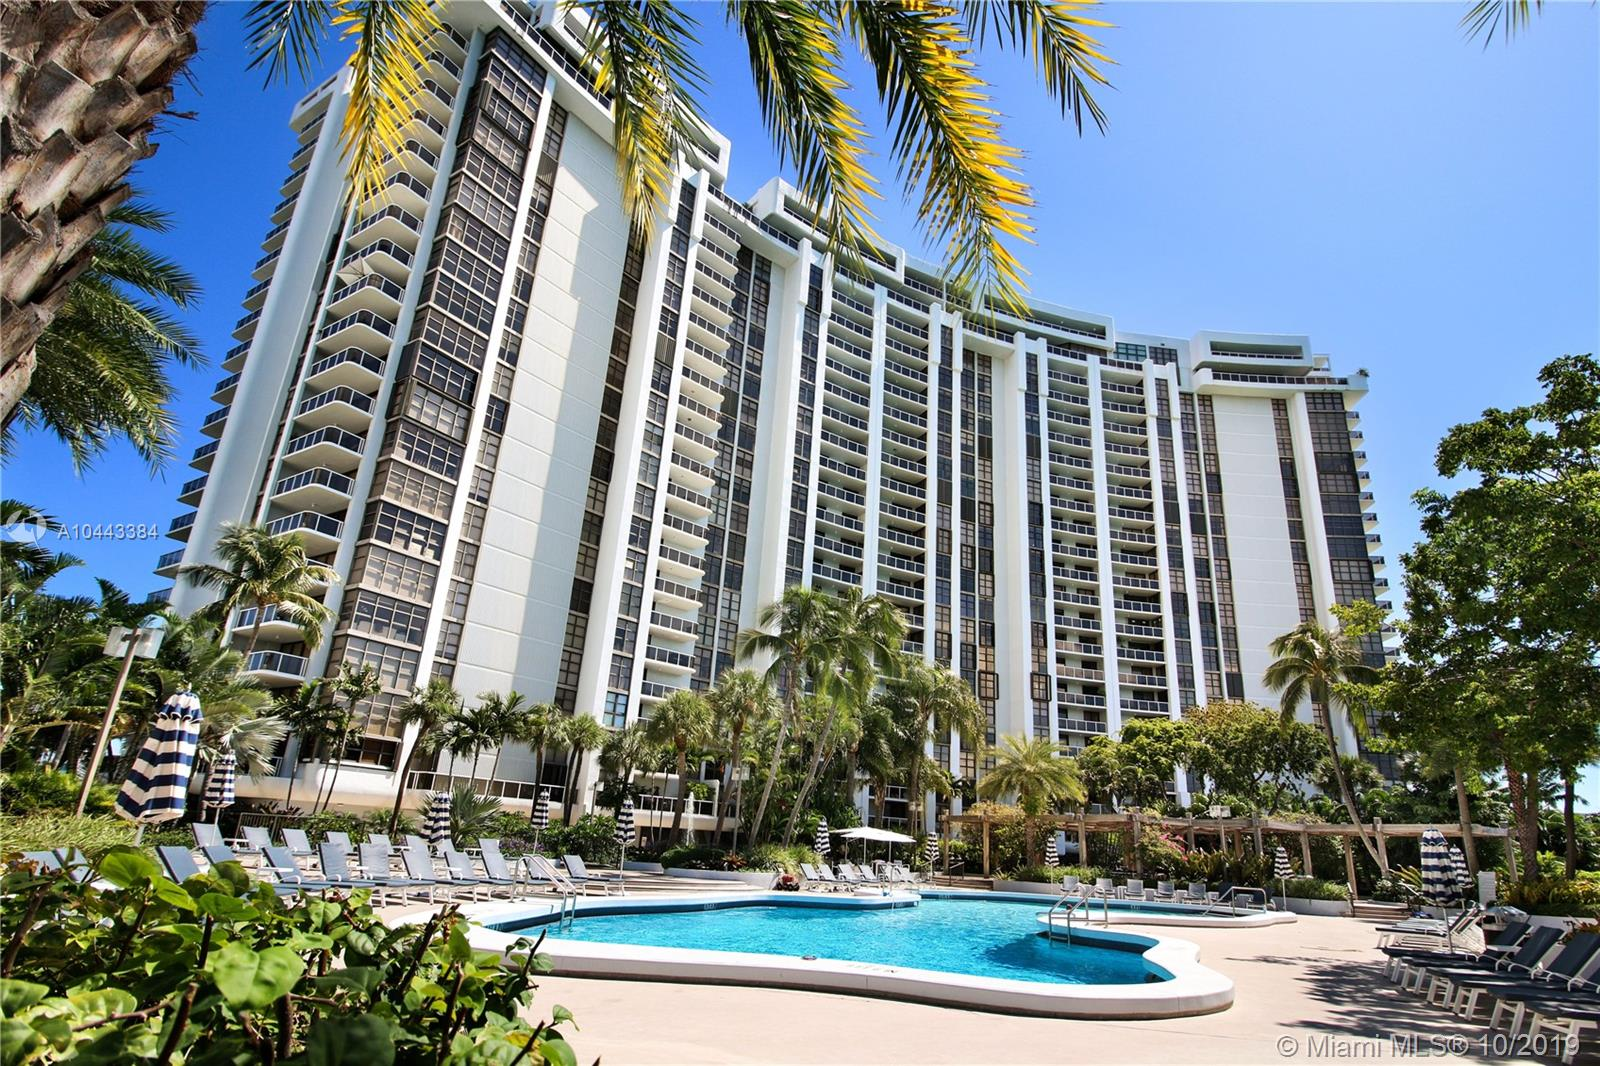 9  Island Ave #1714 For Sale A10443384, FL